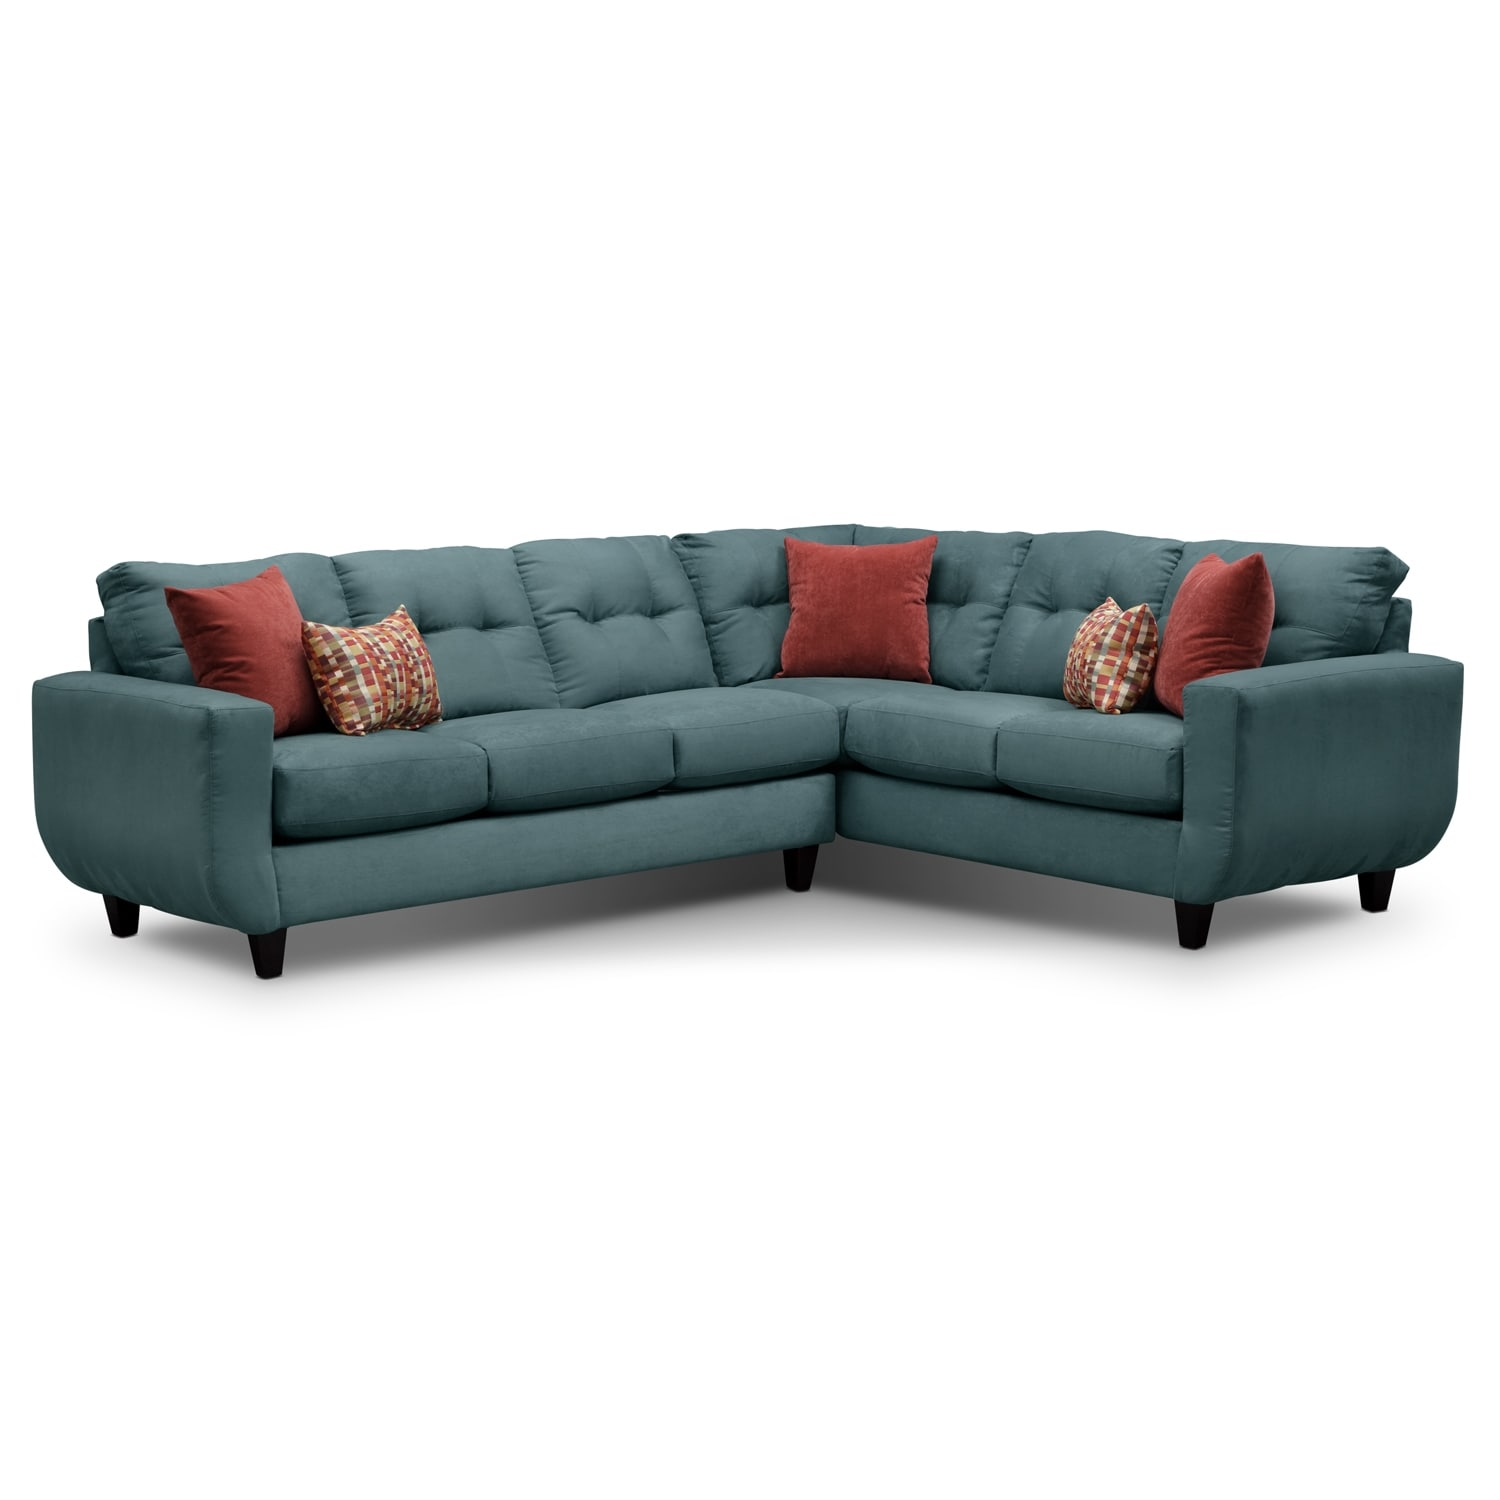 [West Village Blue II 2 Pc. Sectional]